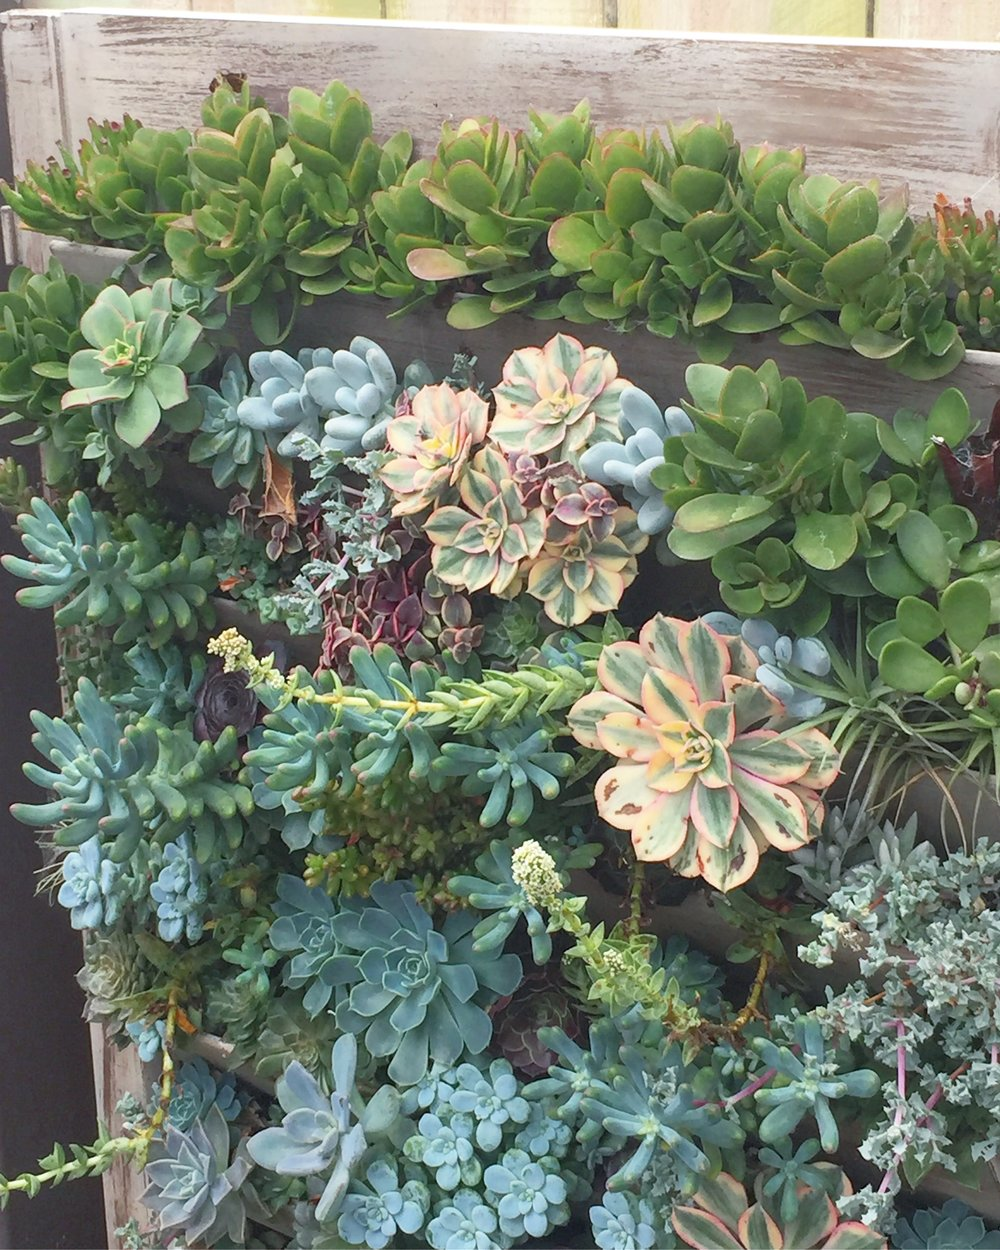 Aeonium Sunburst stealing the show in this lovely pallet at Succulent Cafe Carlsbad.